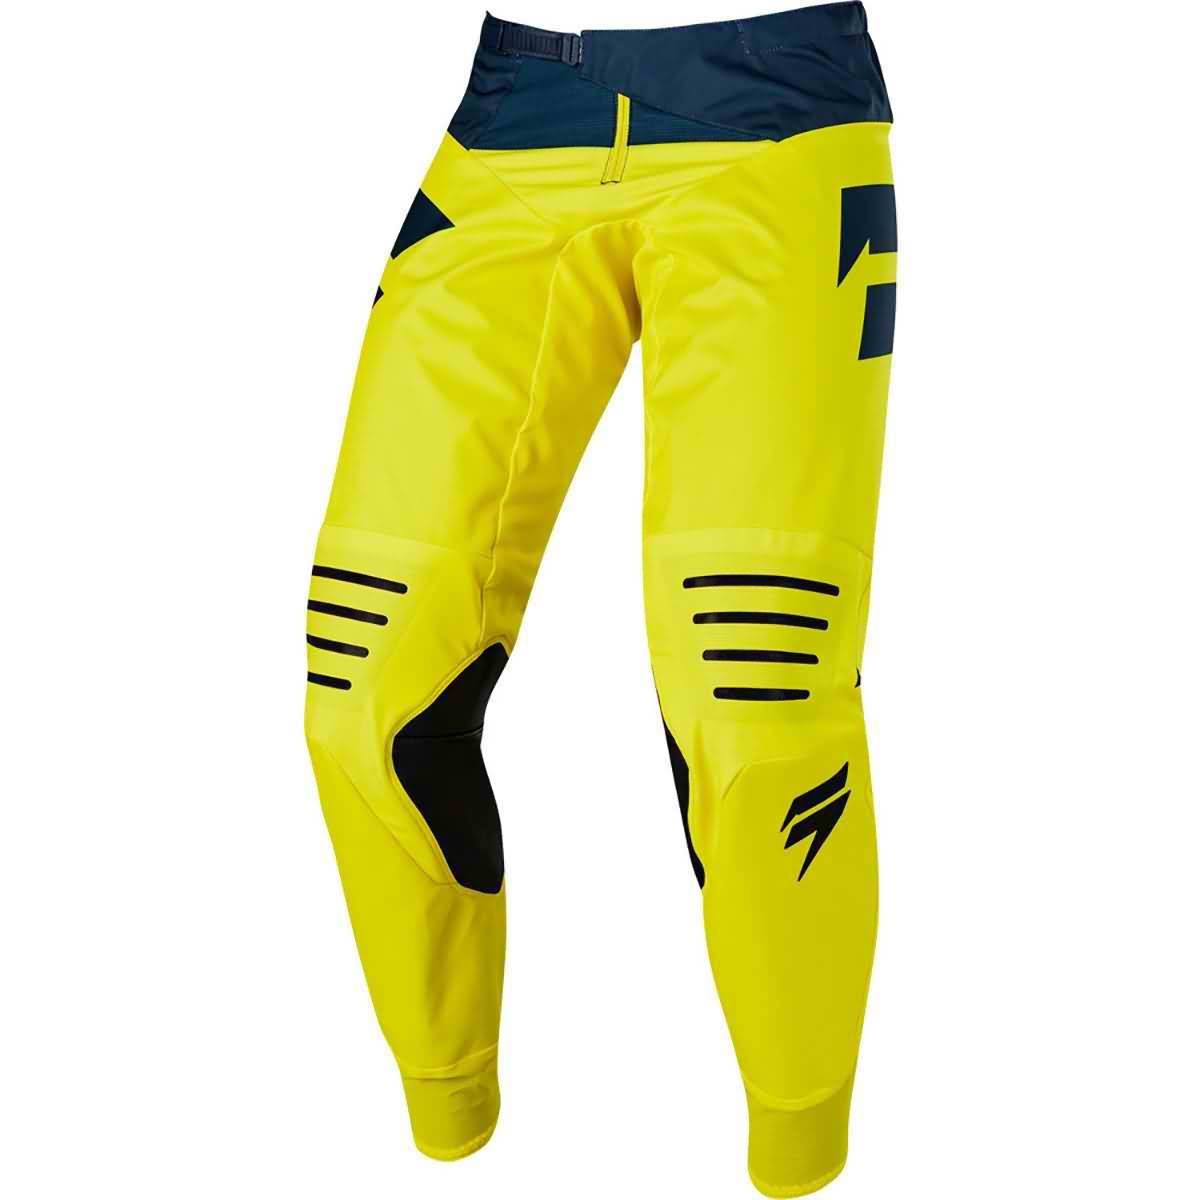 pantalon shift mainline amarillo/azul talle 36